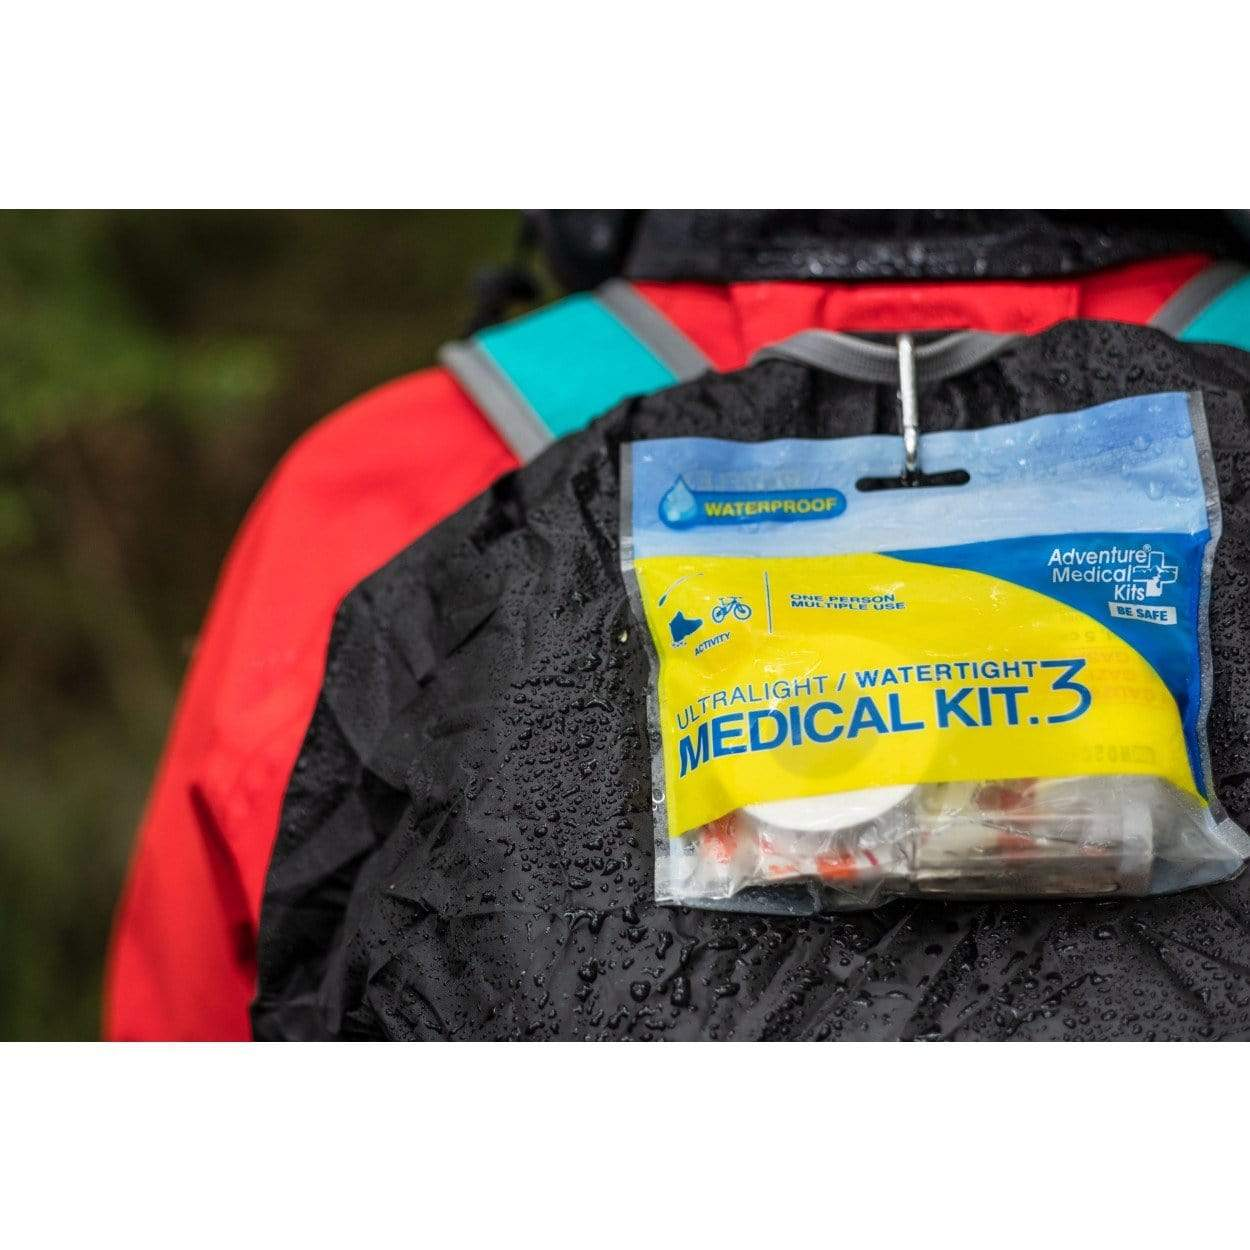 Ultralight / Watertight .3 First Aid Kit